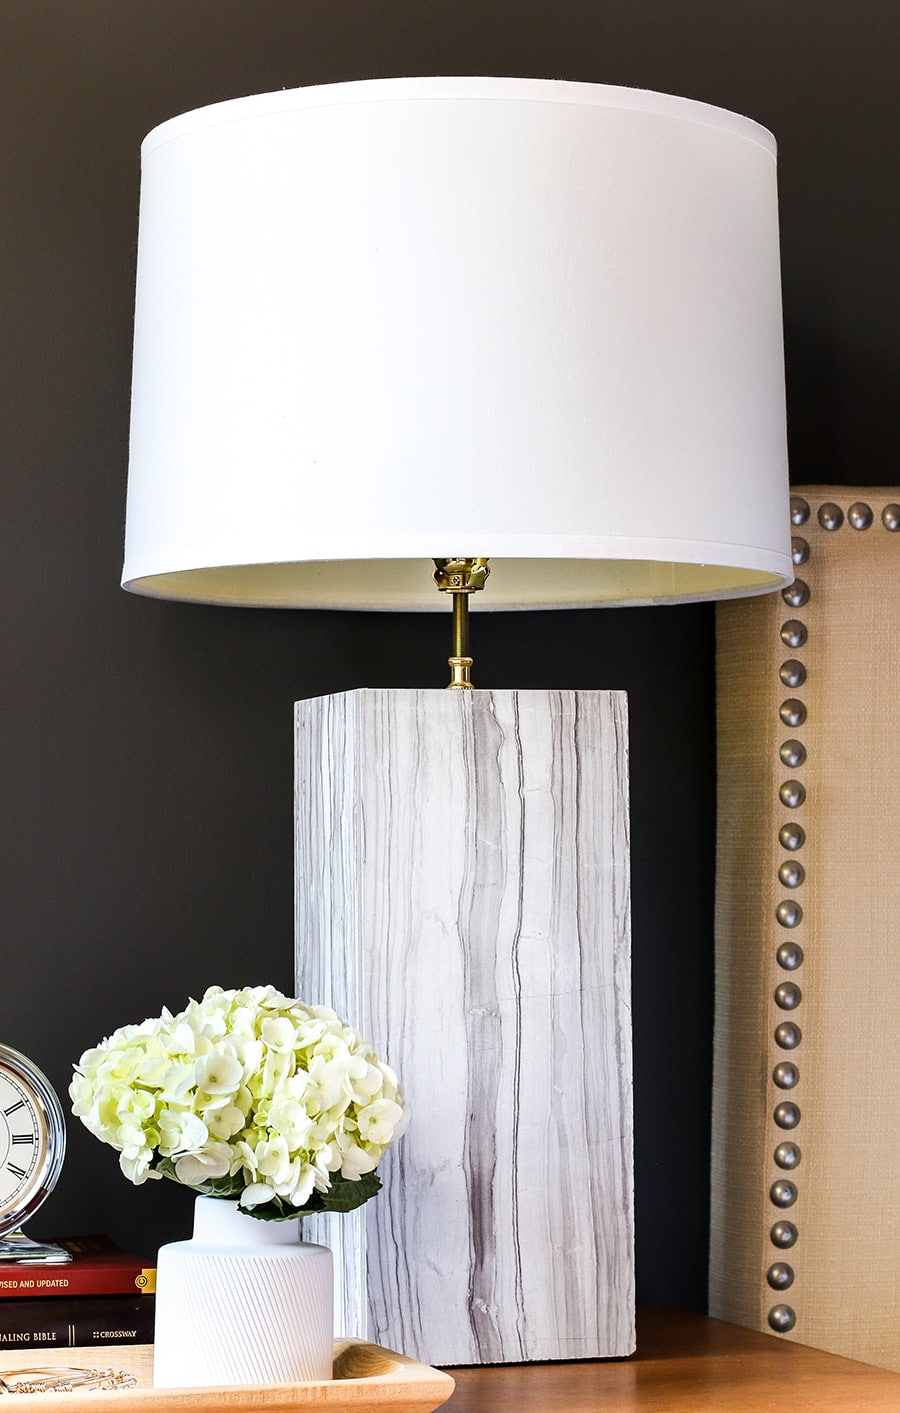 How to make a DIY marble lamp out of tile! Via Jen Woodhouse